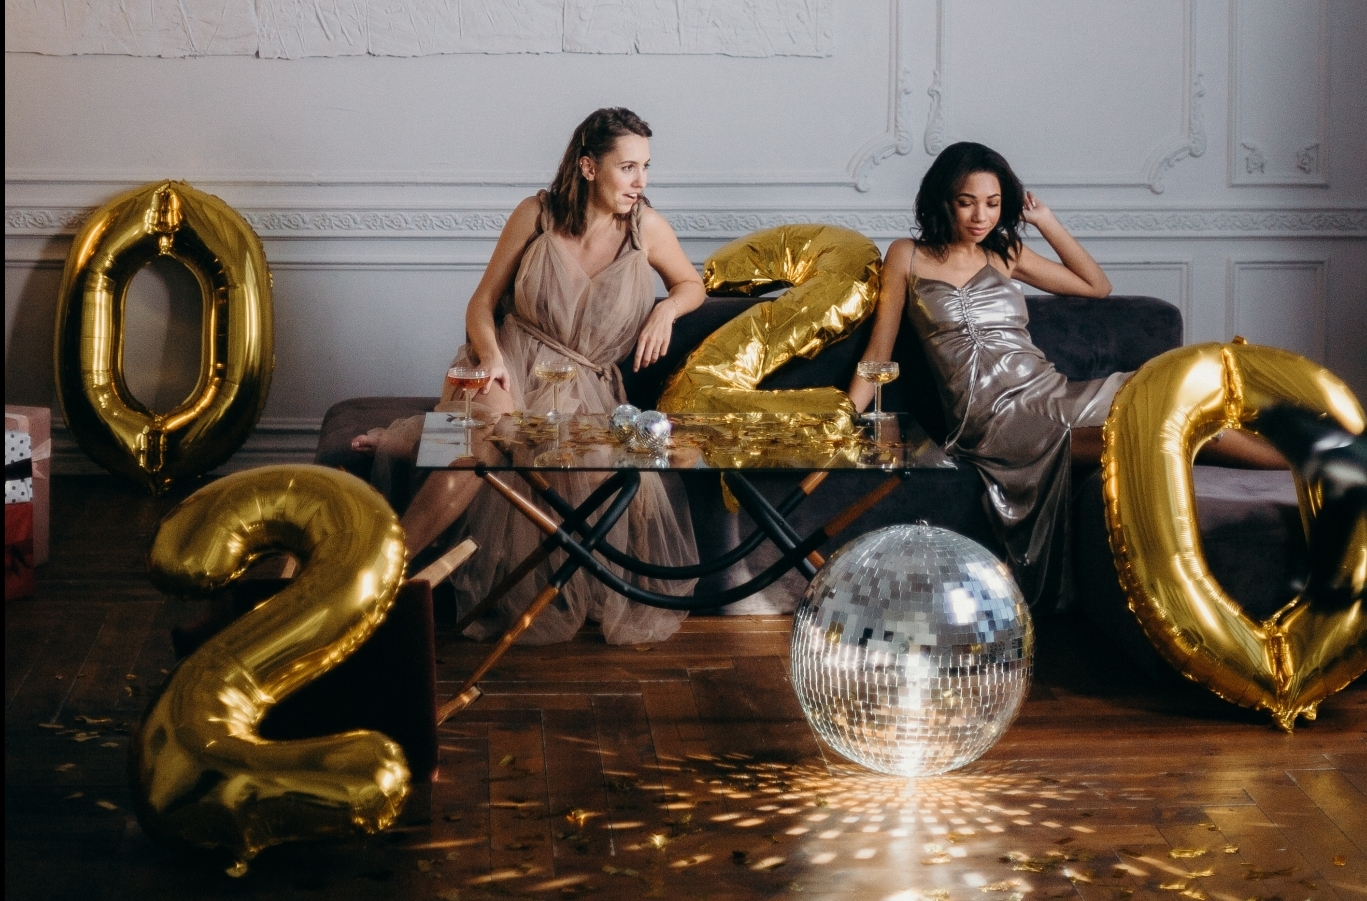 women on couch at New Year's party / Photo by cottonbro from Pexels